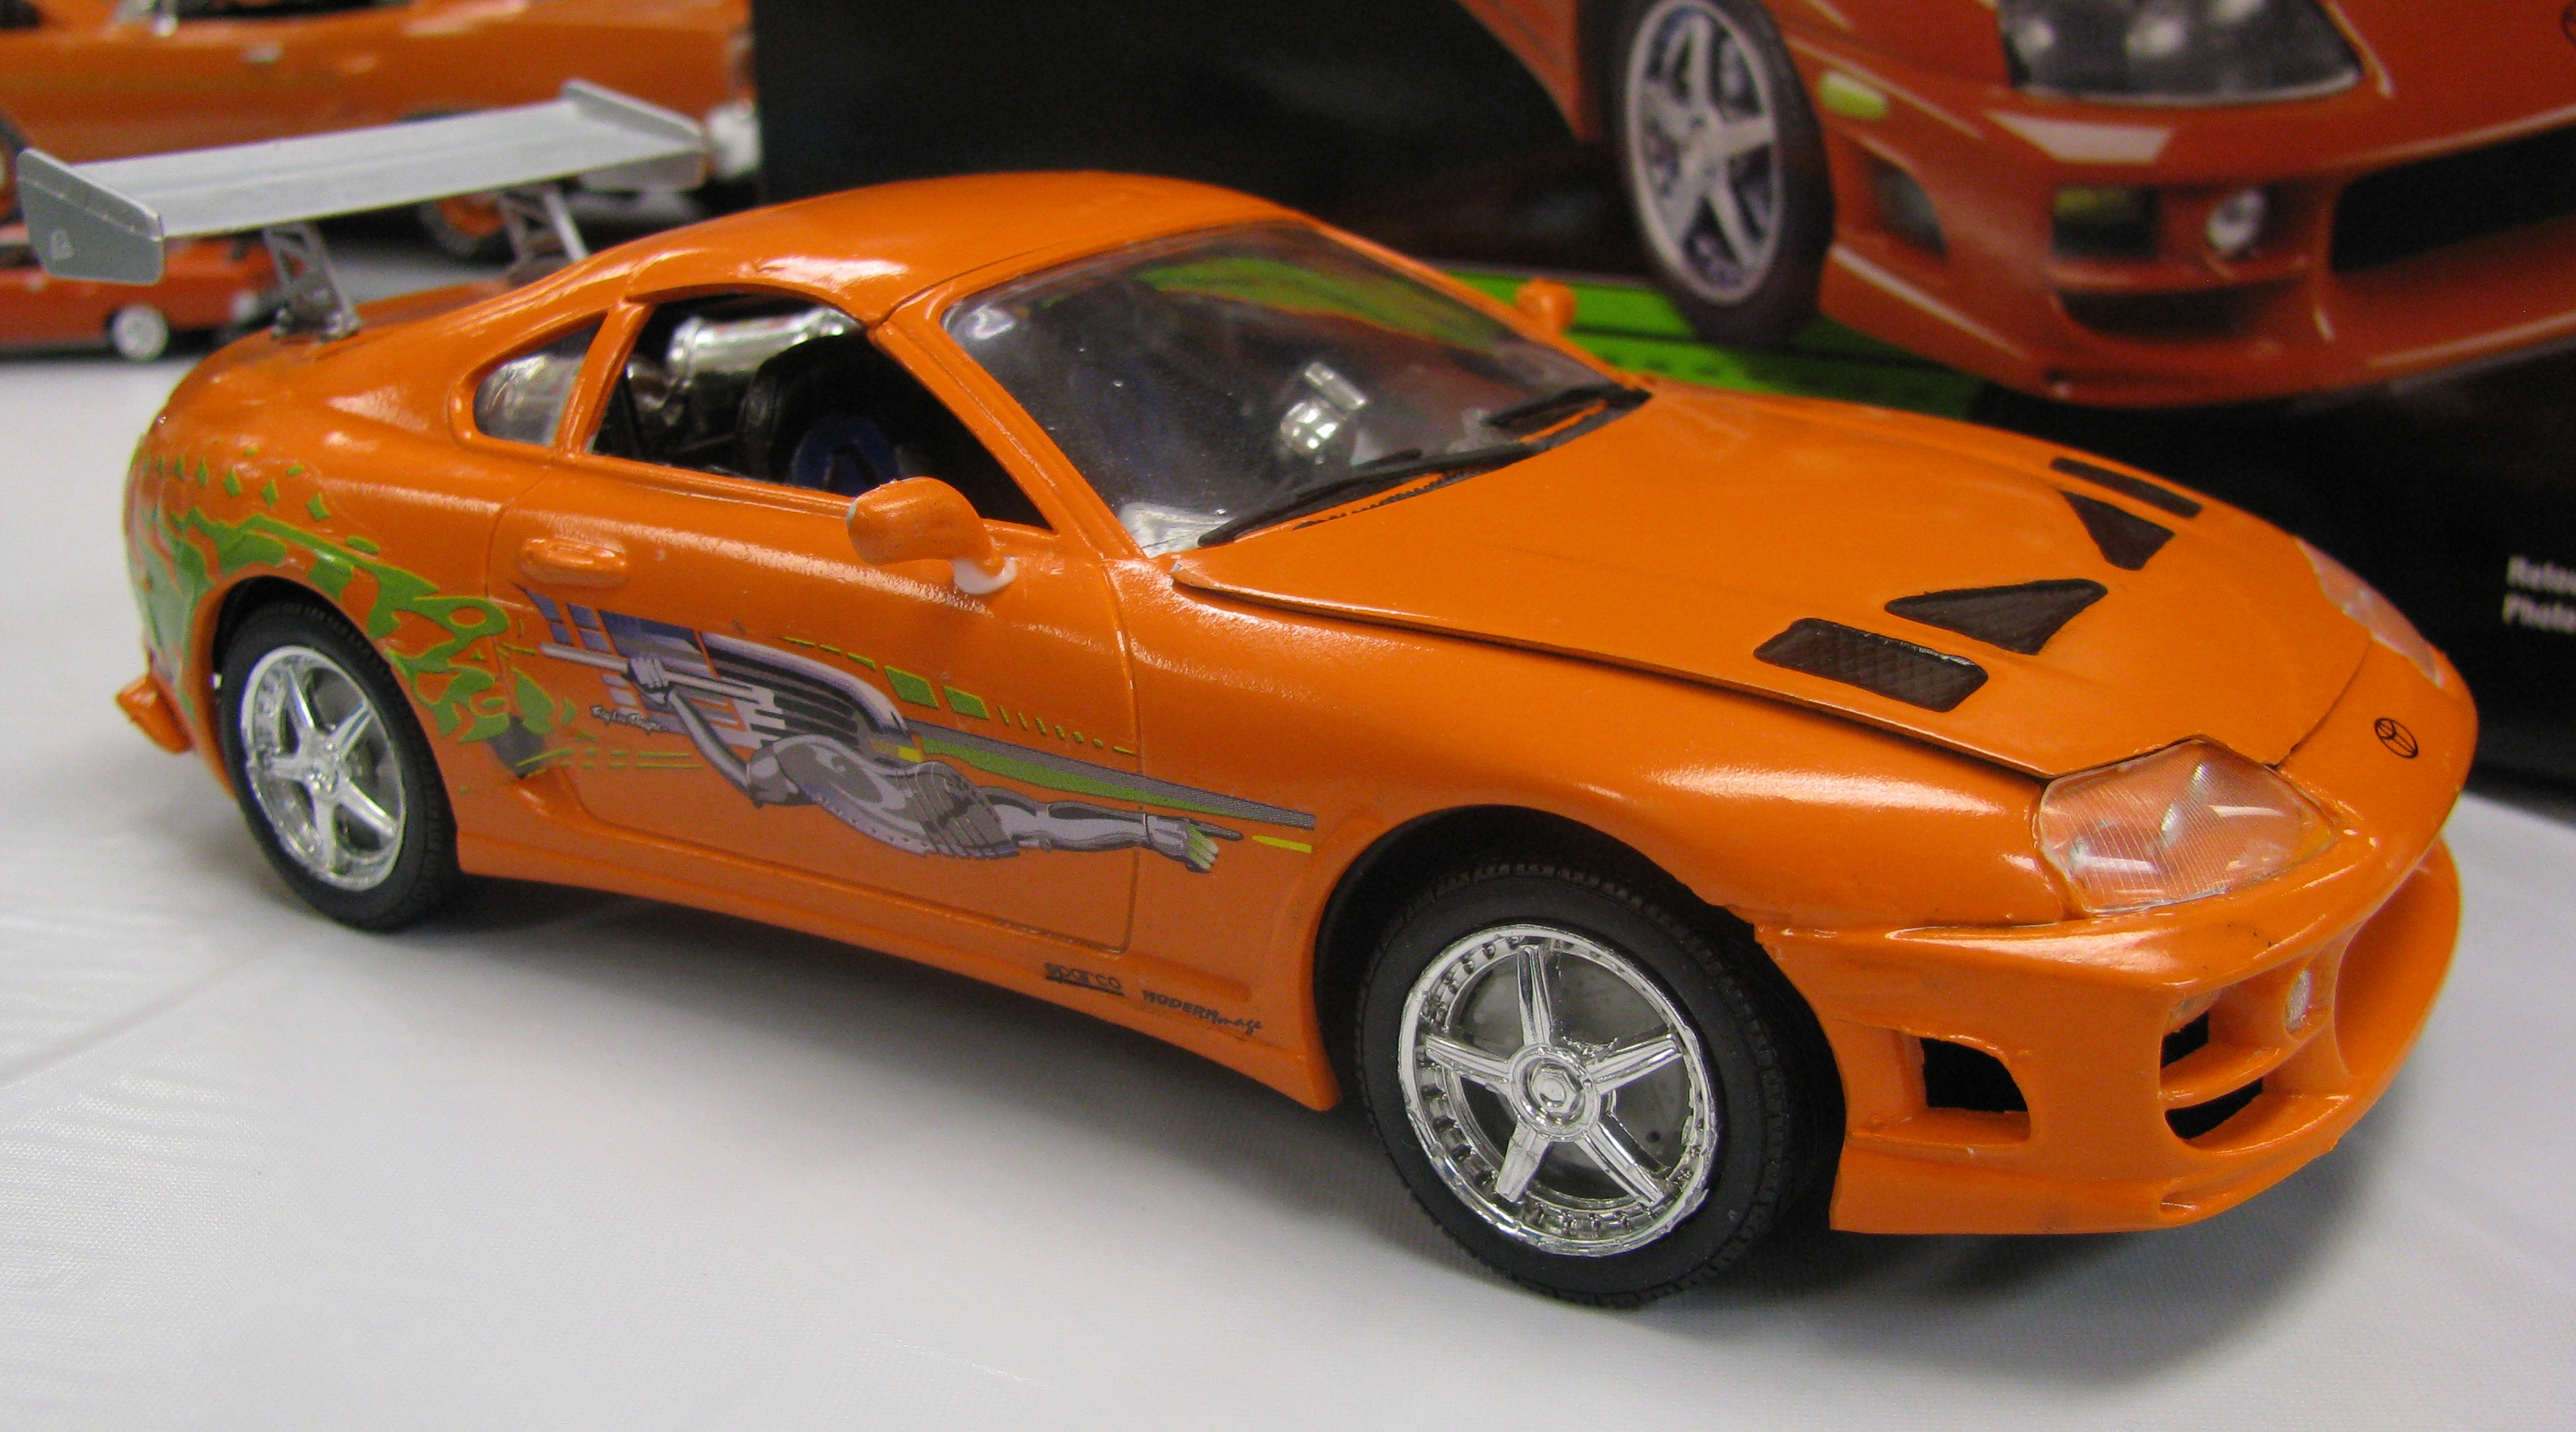 toyota supra fast and furious green. view photo of a model the 1995 toyota supra from fast and furious green